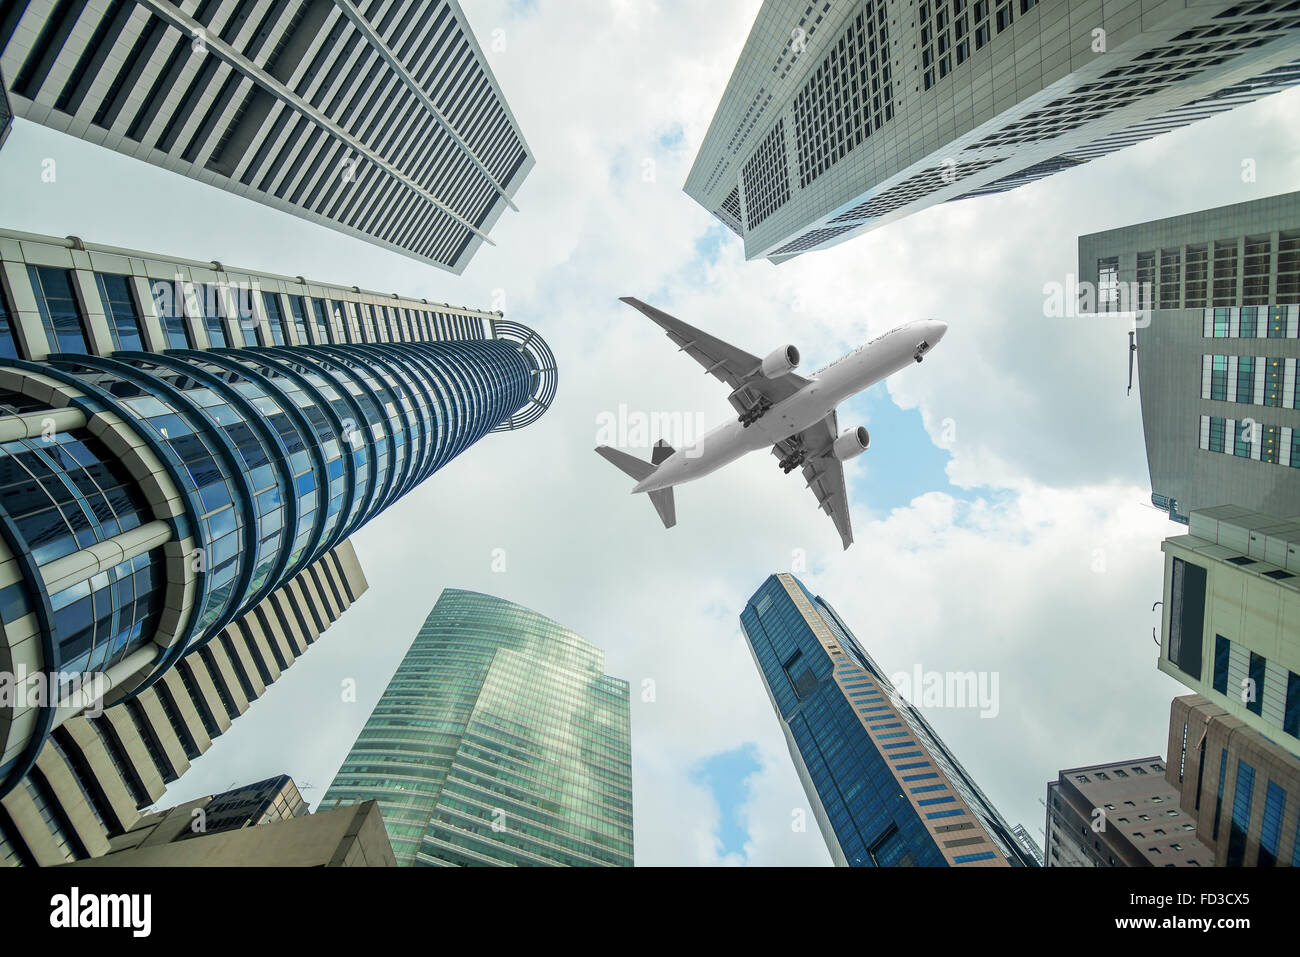 Tall city buildings and a plane flying overhead in morning - Stock Image